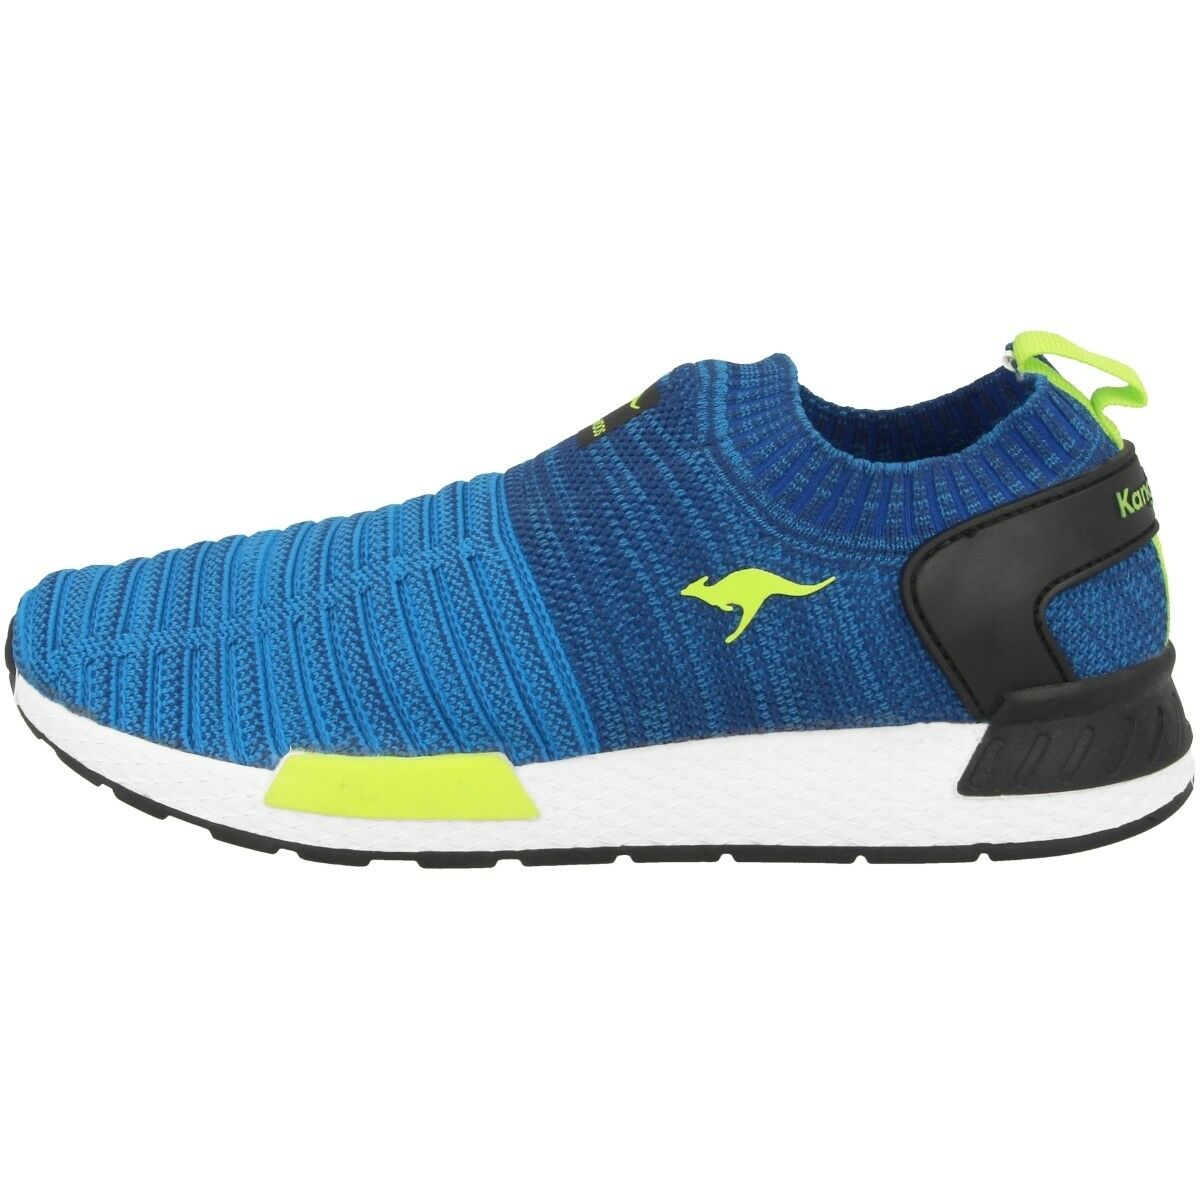 Kangaroos W-600 shoes Sport Casual Trainers Navy Lime 81050-4800